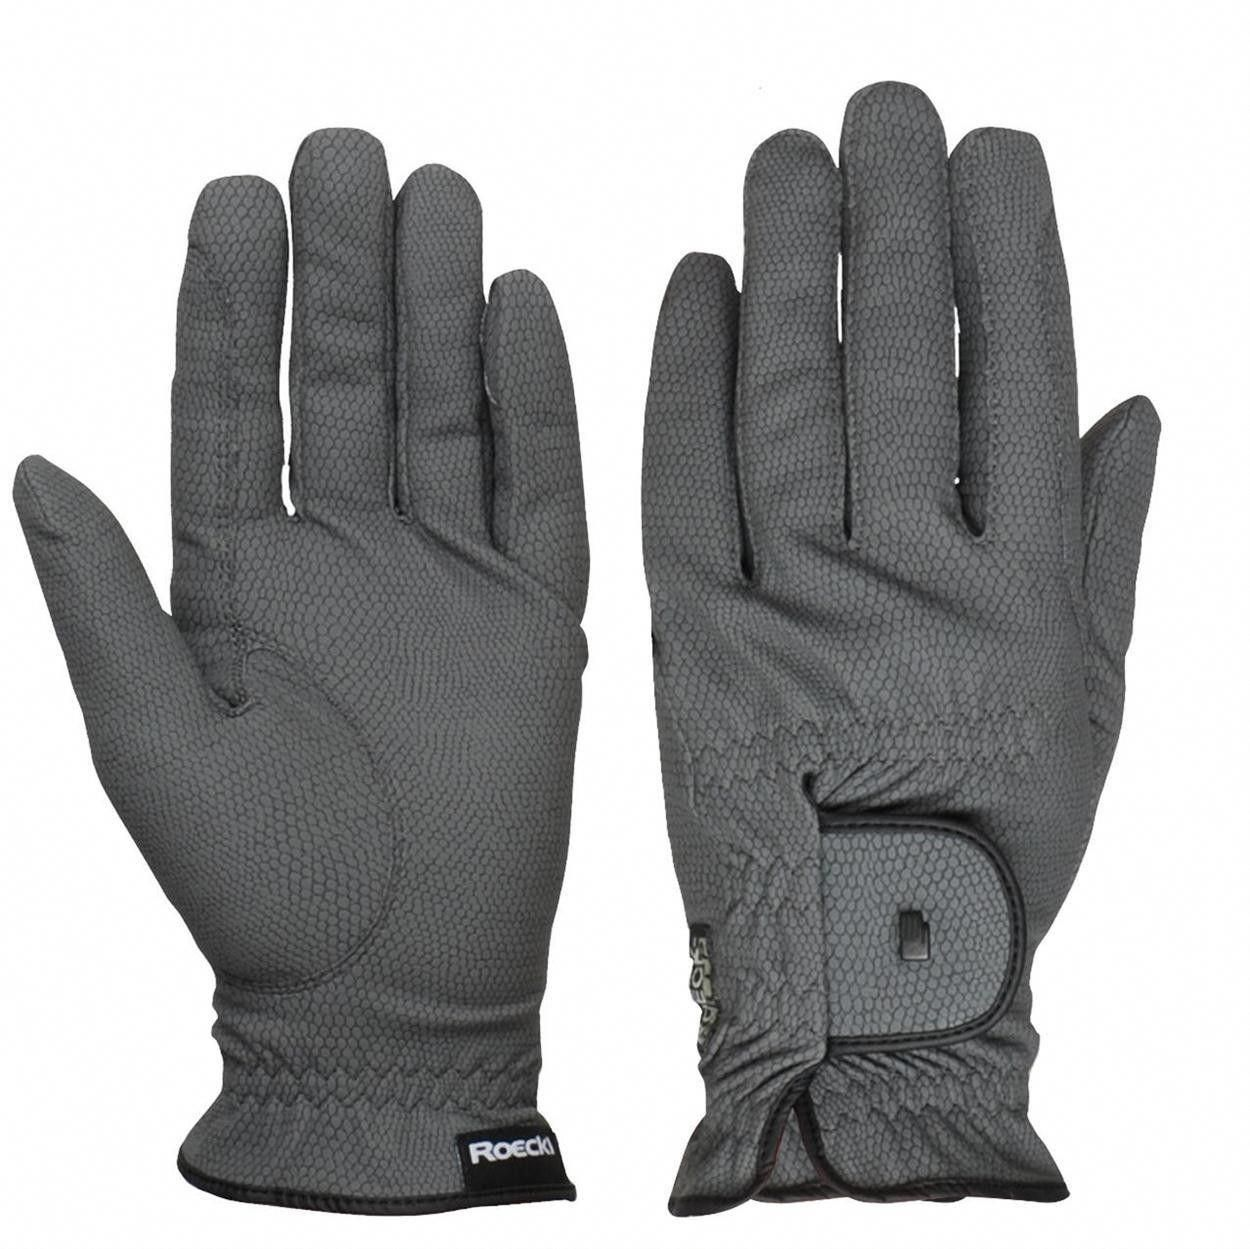 Roeckl Roeck Grip Gloves Horse Riding Gloves Equestrian Clothing Accessories Rider Divoza Horsewor Equestrian Outfits Horse Riding Gloves Grip Gloves